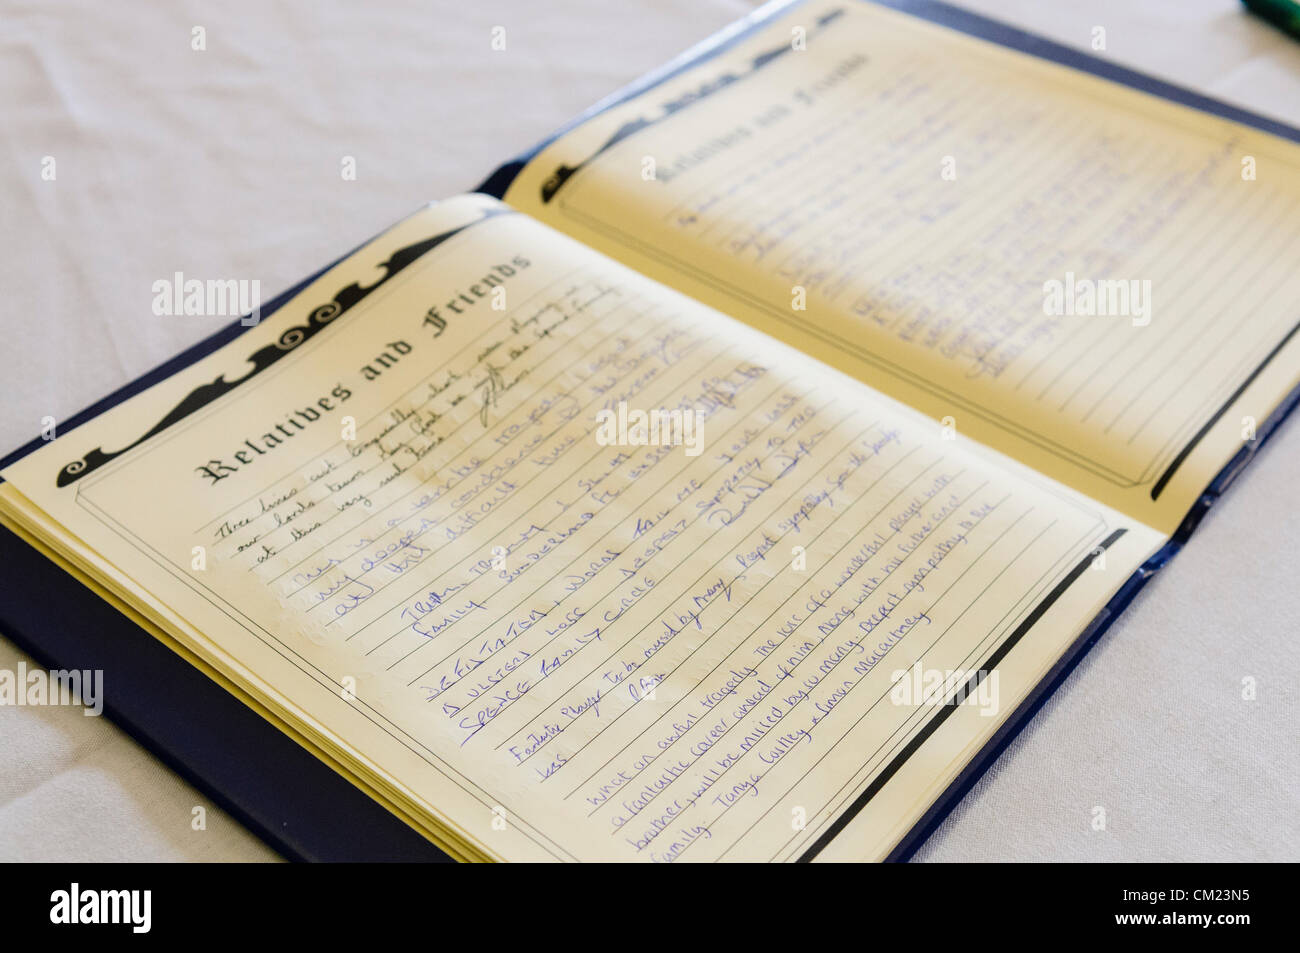 A book of remembrance and condolences for the public to sign after the death of a well loved public figure. - Stock Image